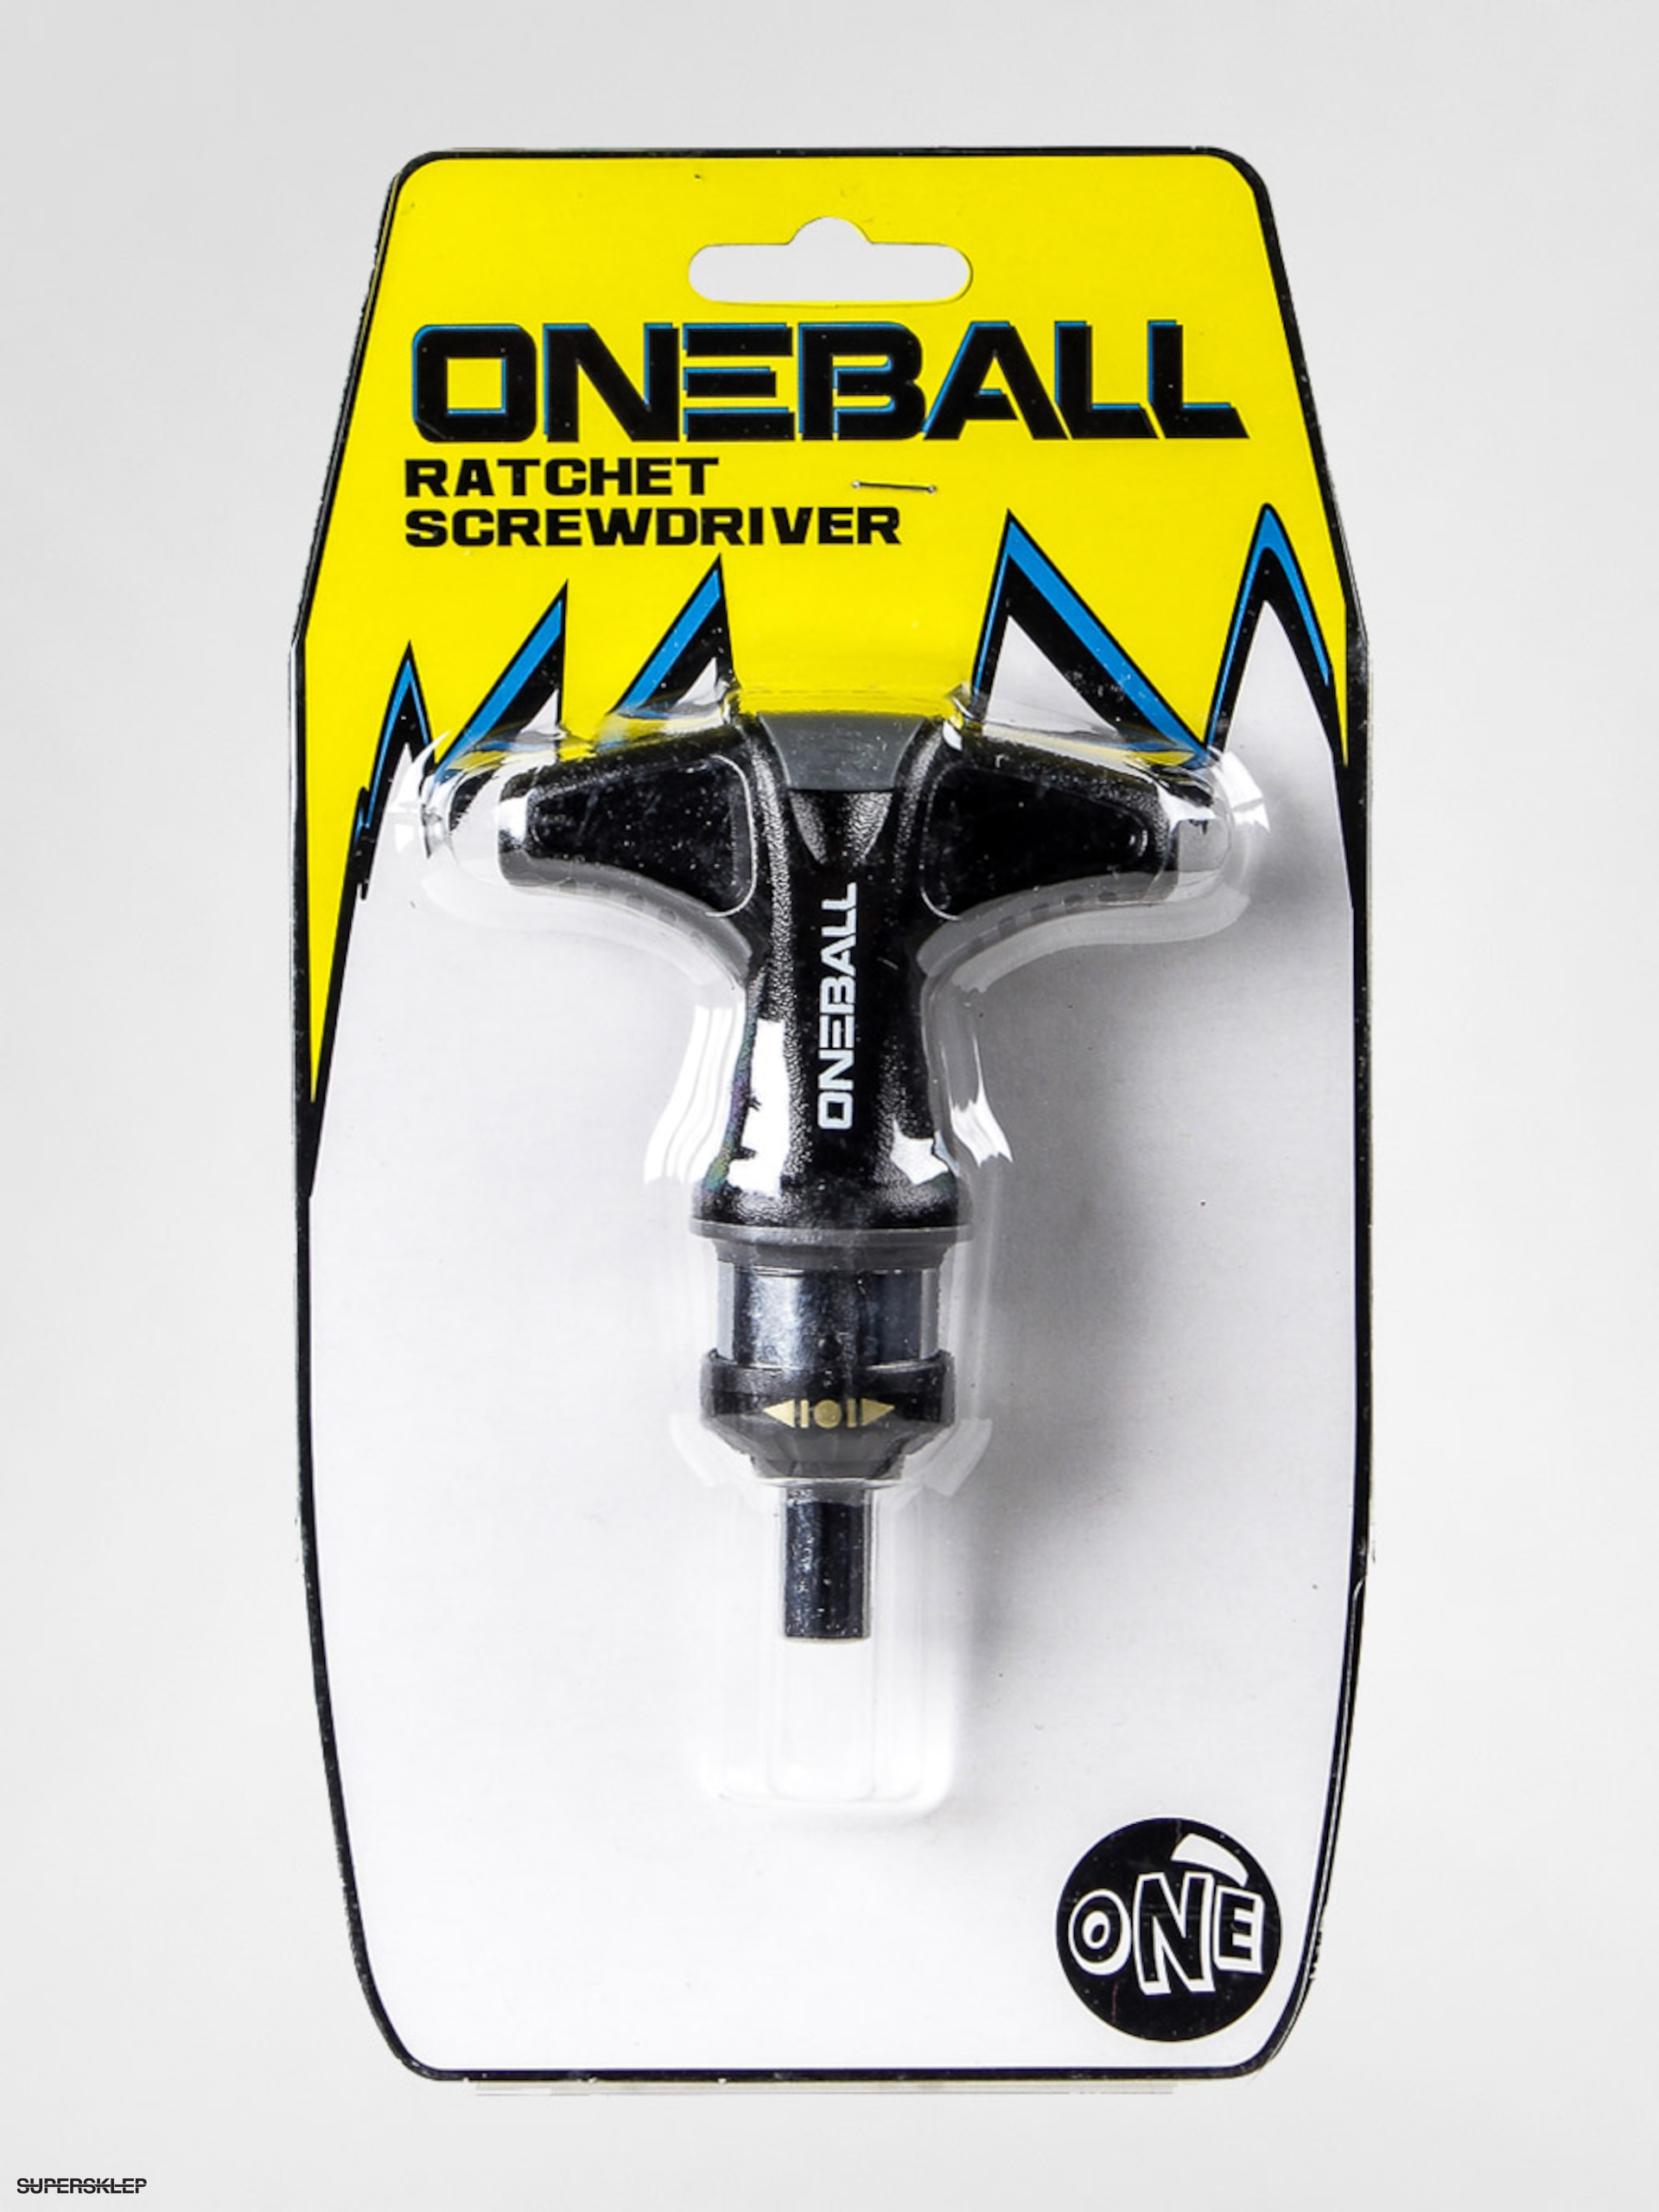 Śrubokręt Oneball Ratchet Screwdriver